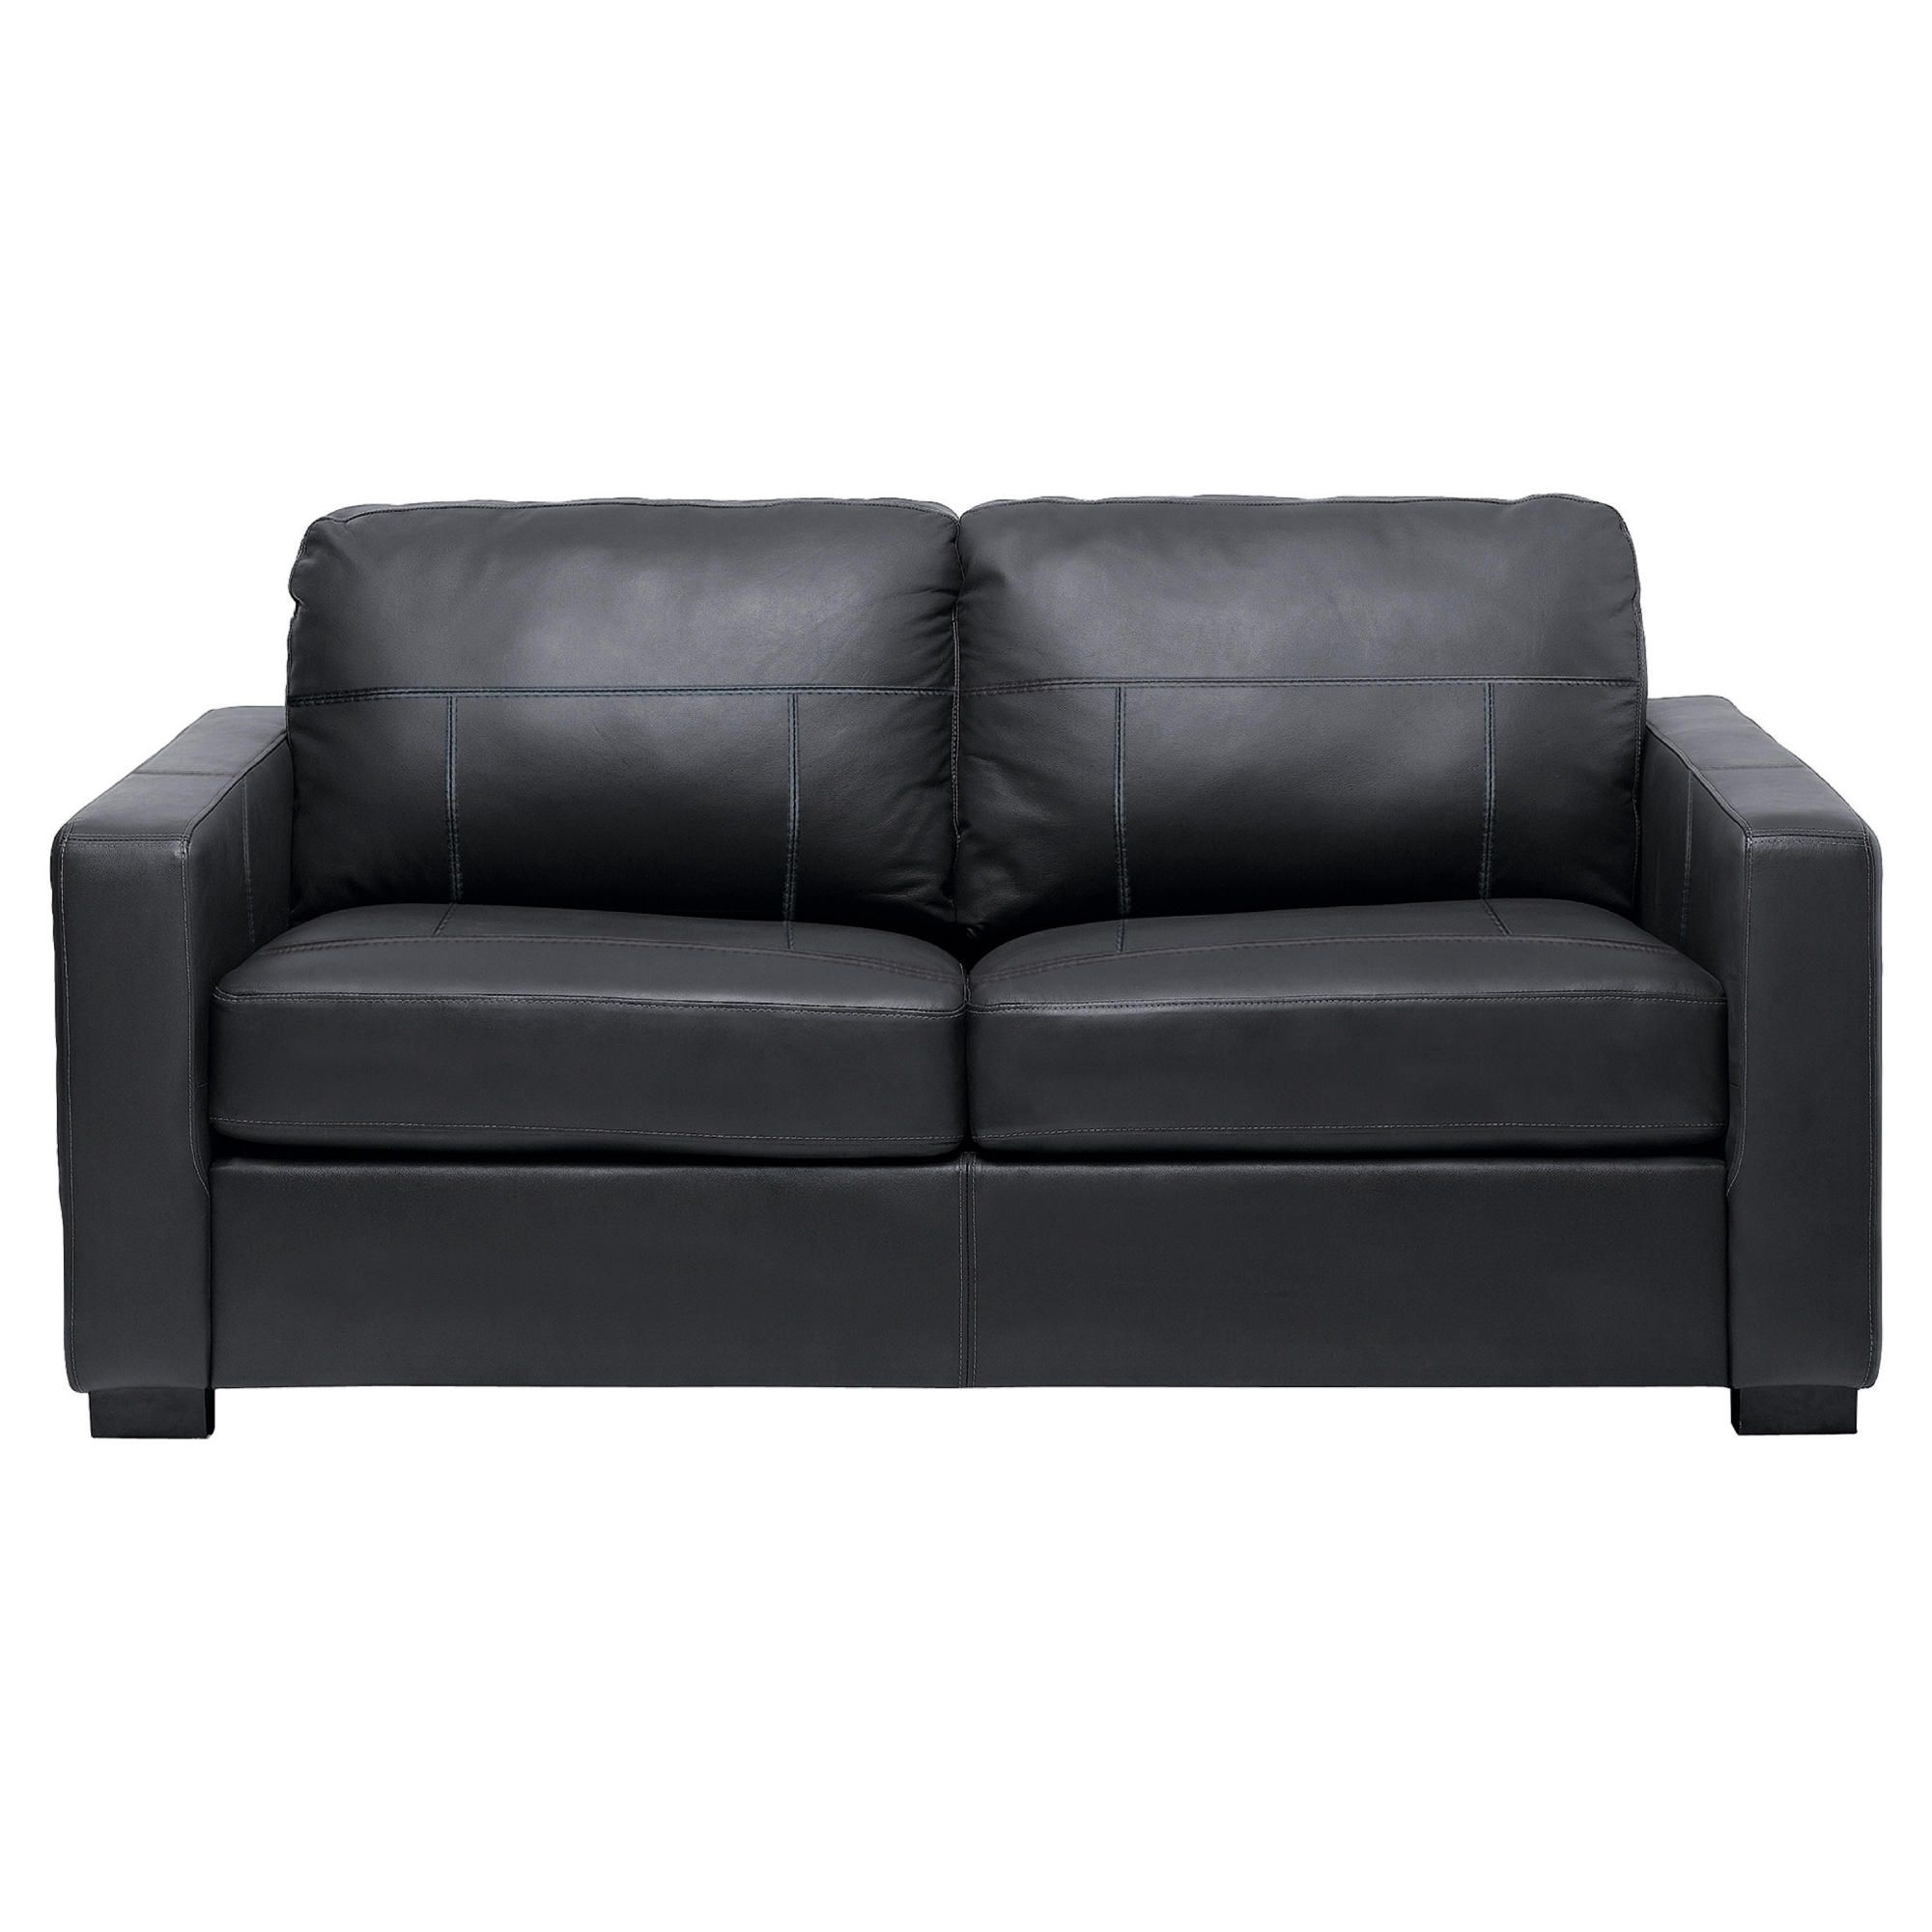 Colorado Leather Sofabed, Black at Tescos Direct